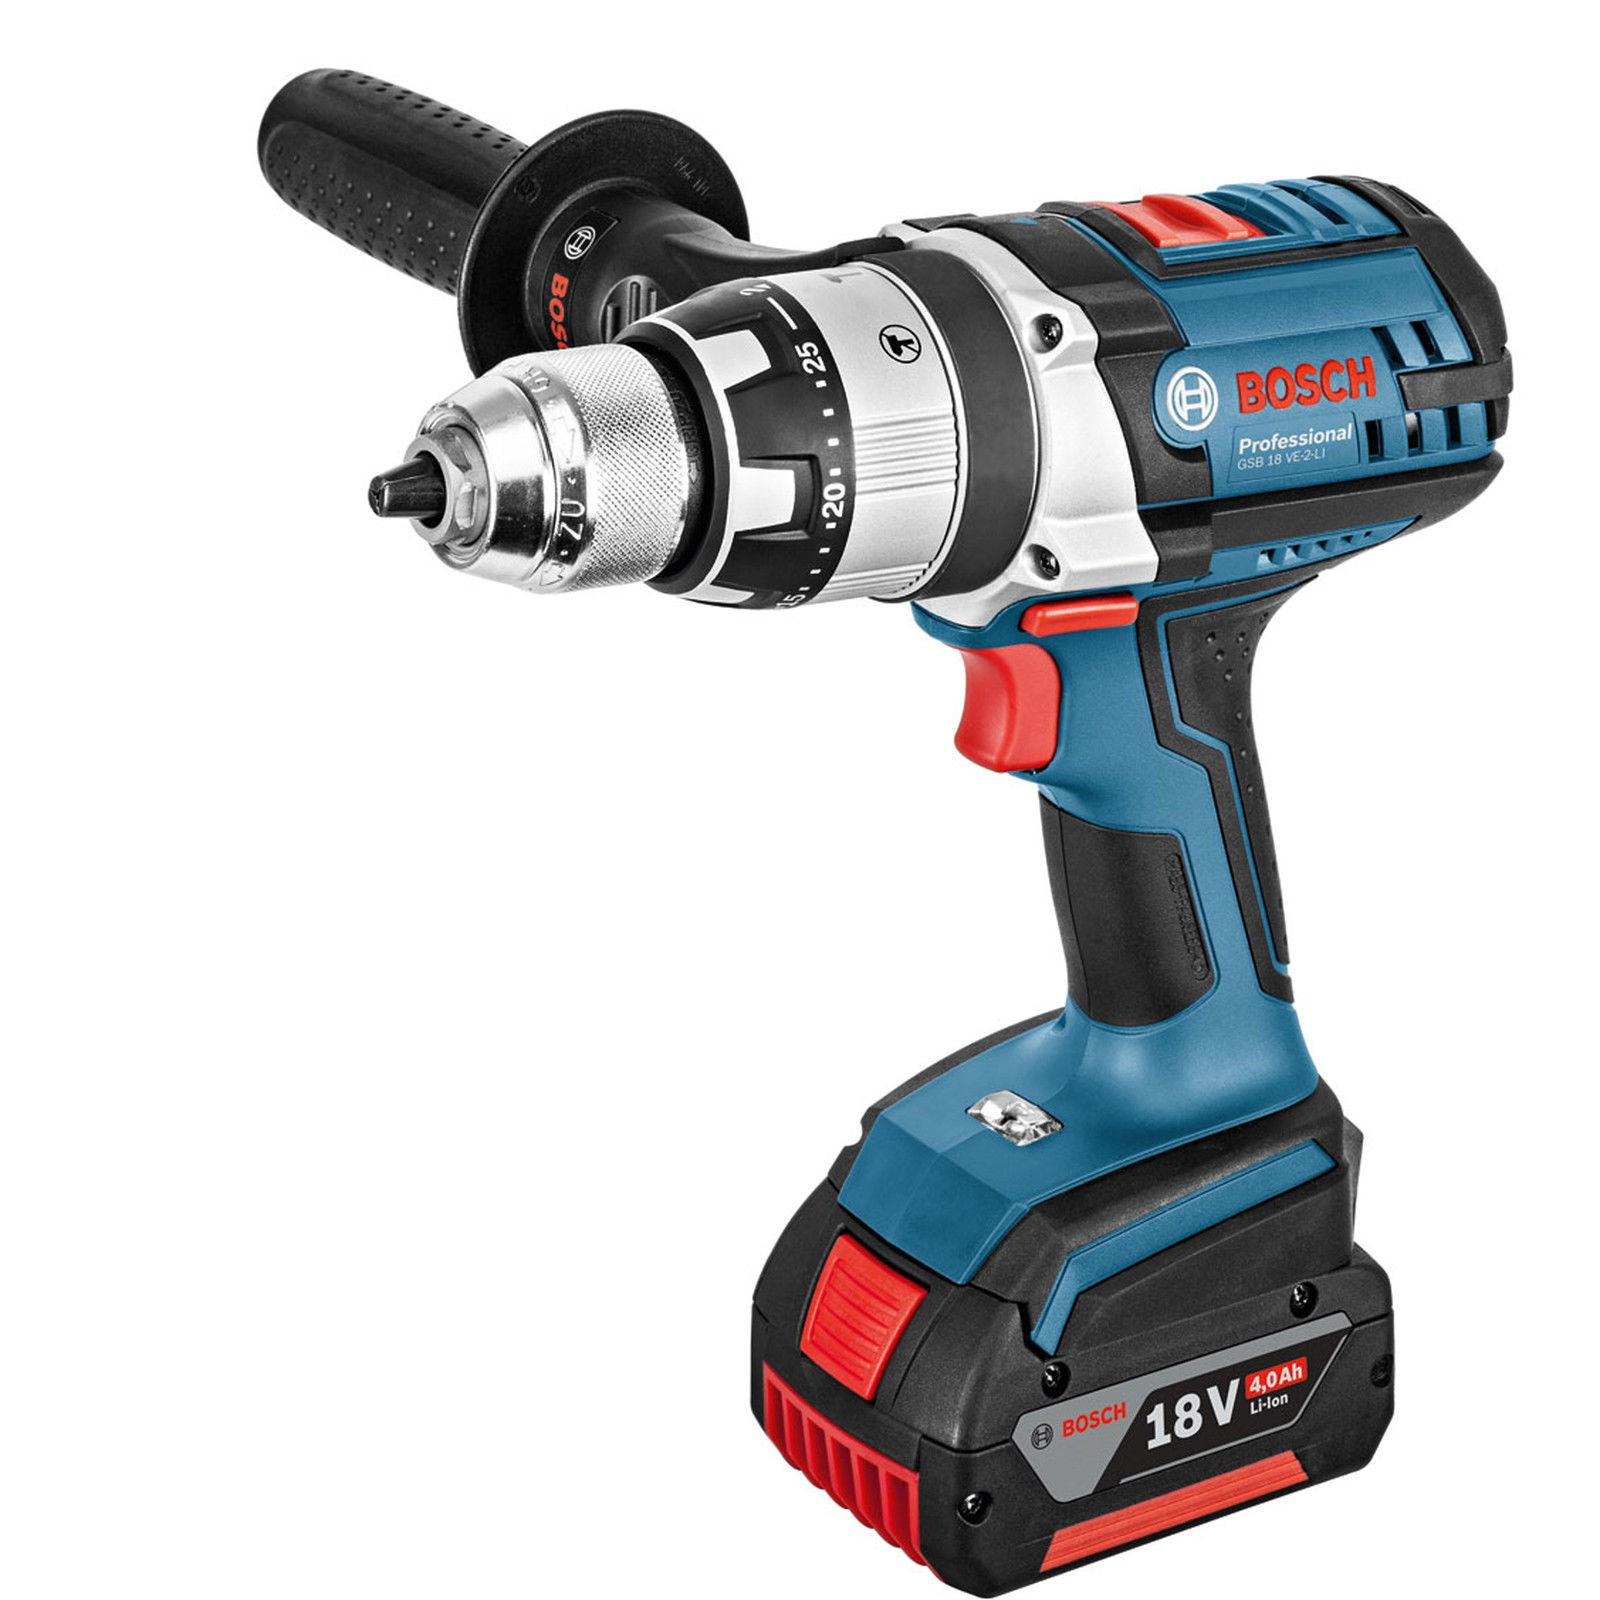 bosch gsb 18 ve 2 li 18v combi drill gdr 18 v li impact driver twin kit with 2x 4 0ah. Black Bedroom Furniture Sets. Home Design Ideas